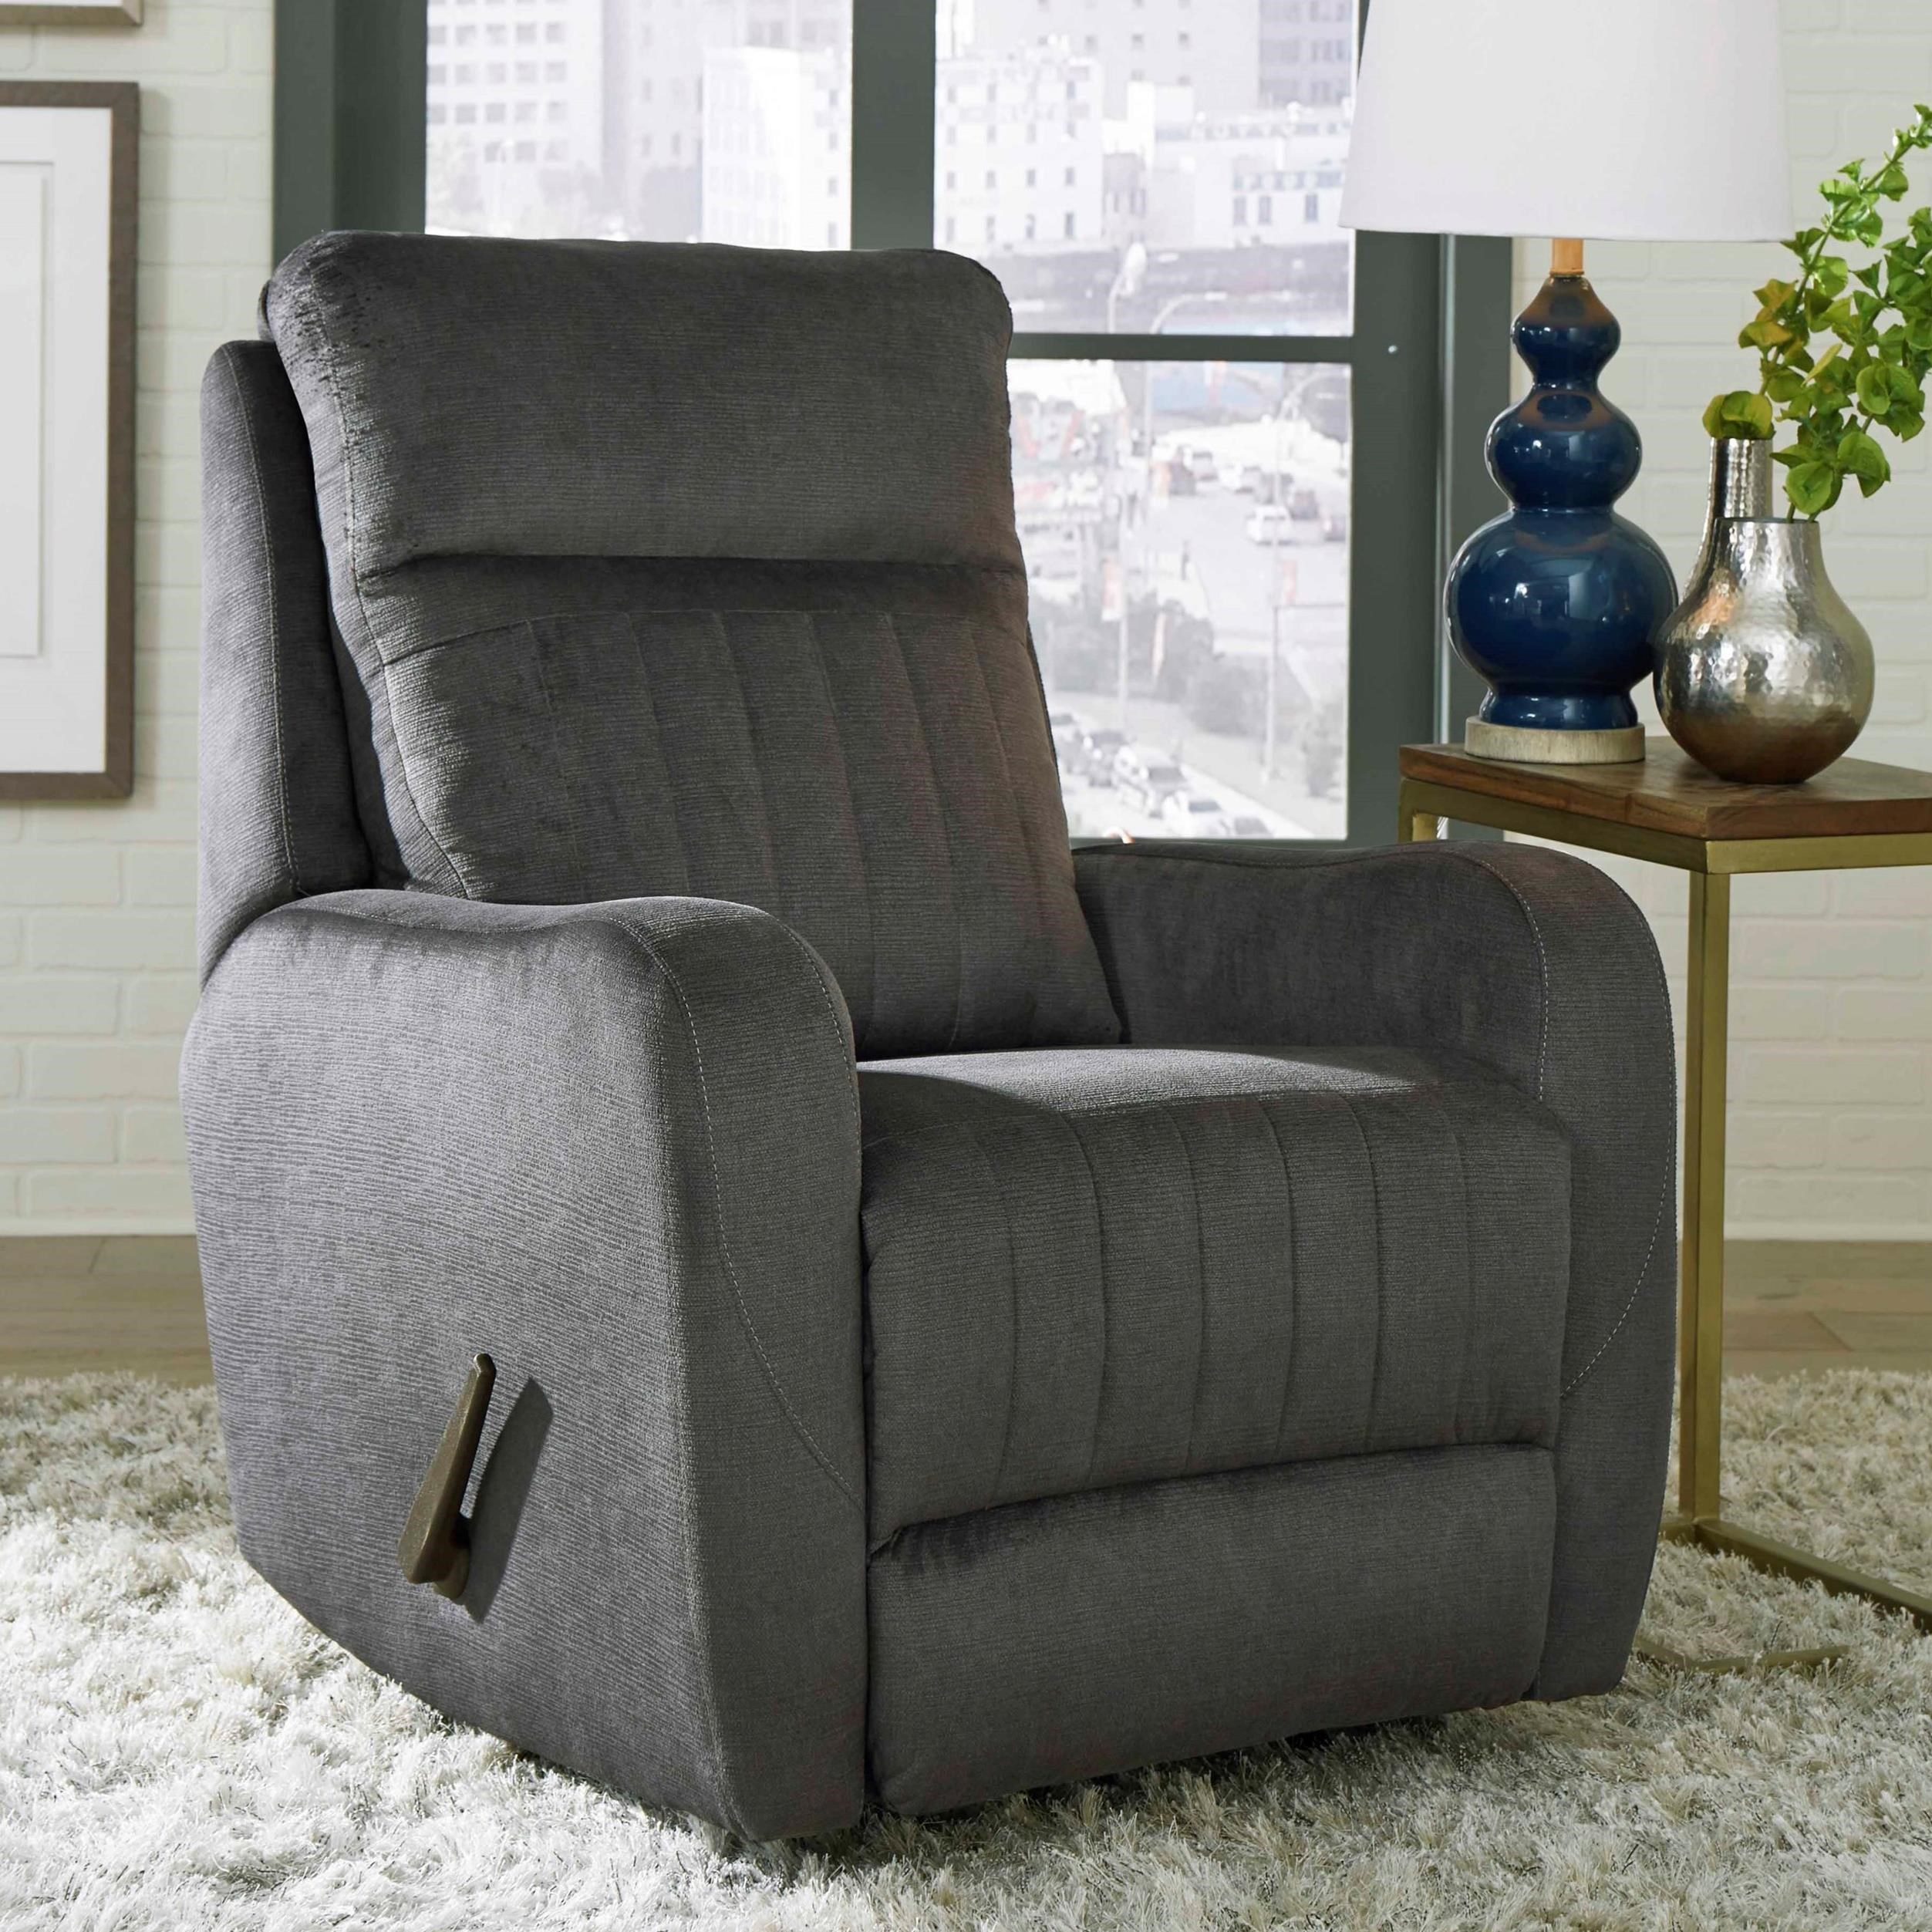 Racetrack Rocker Recliner by Southern Motion at Lapeer Furniture & Mattress Center